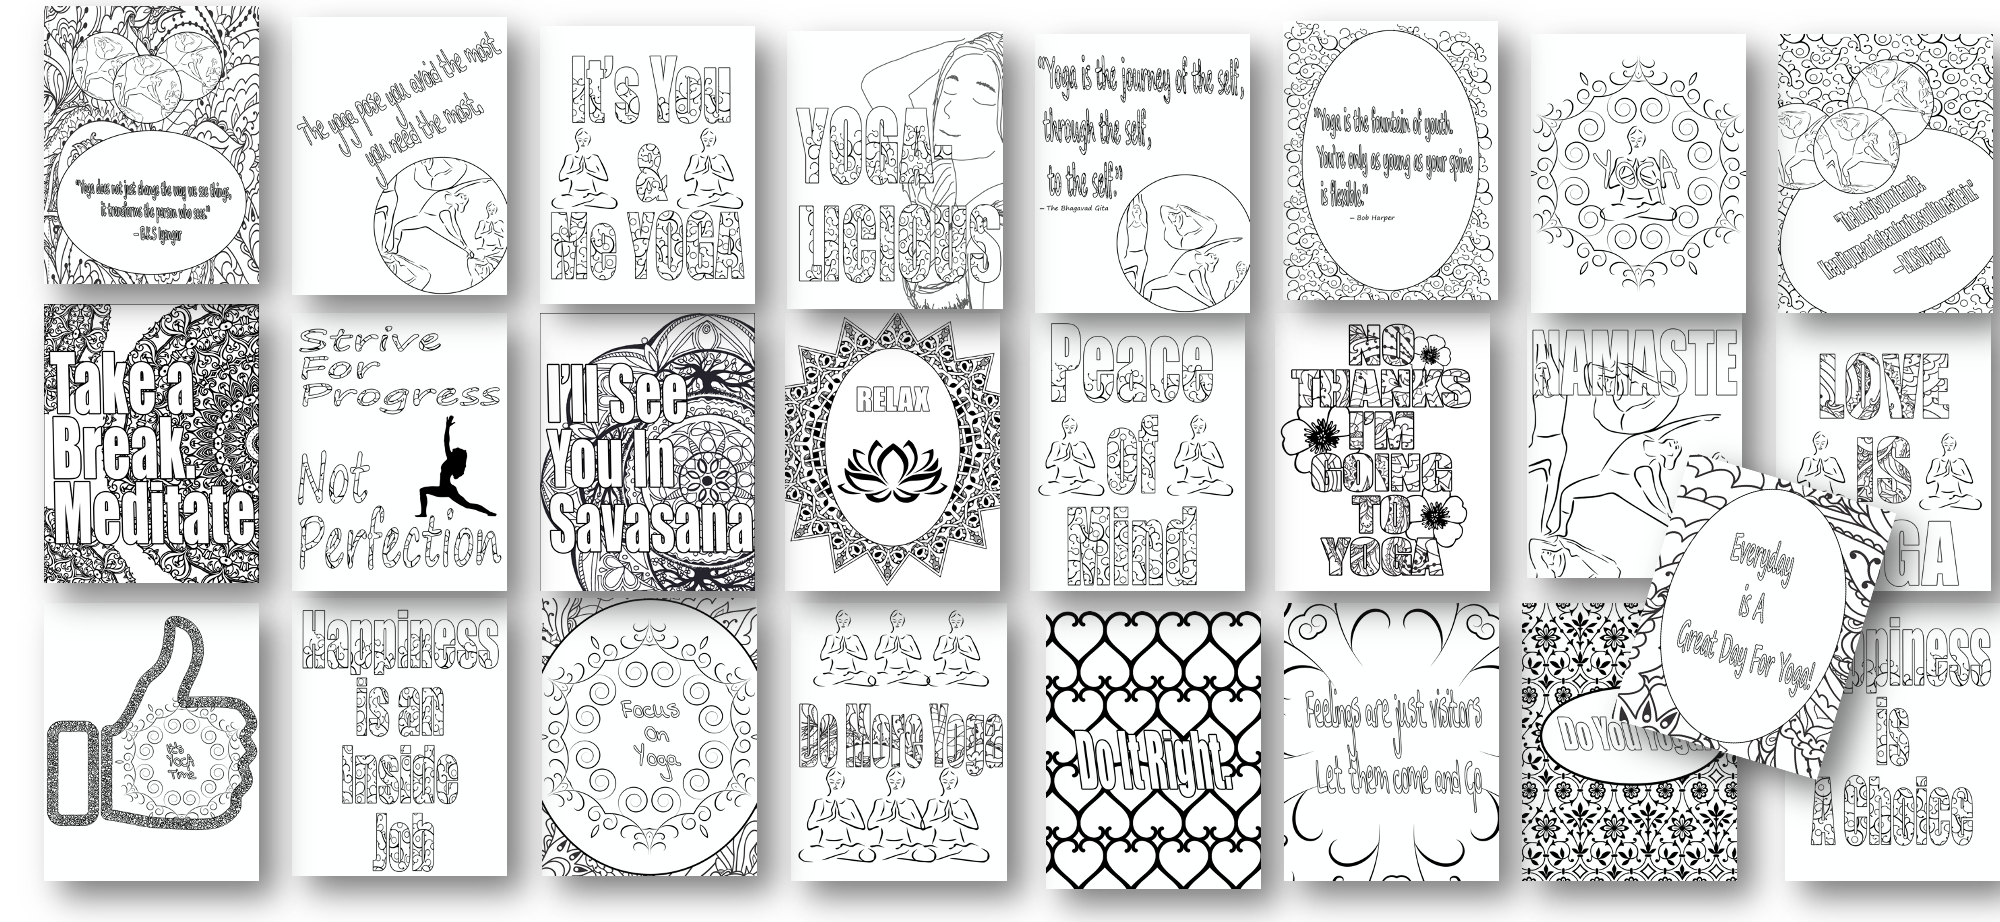 24 More Yoga Coloring Pages